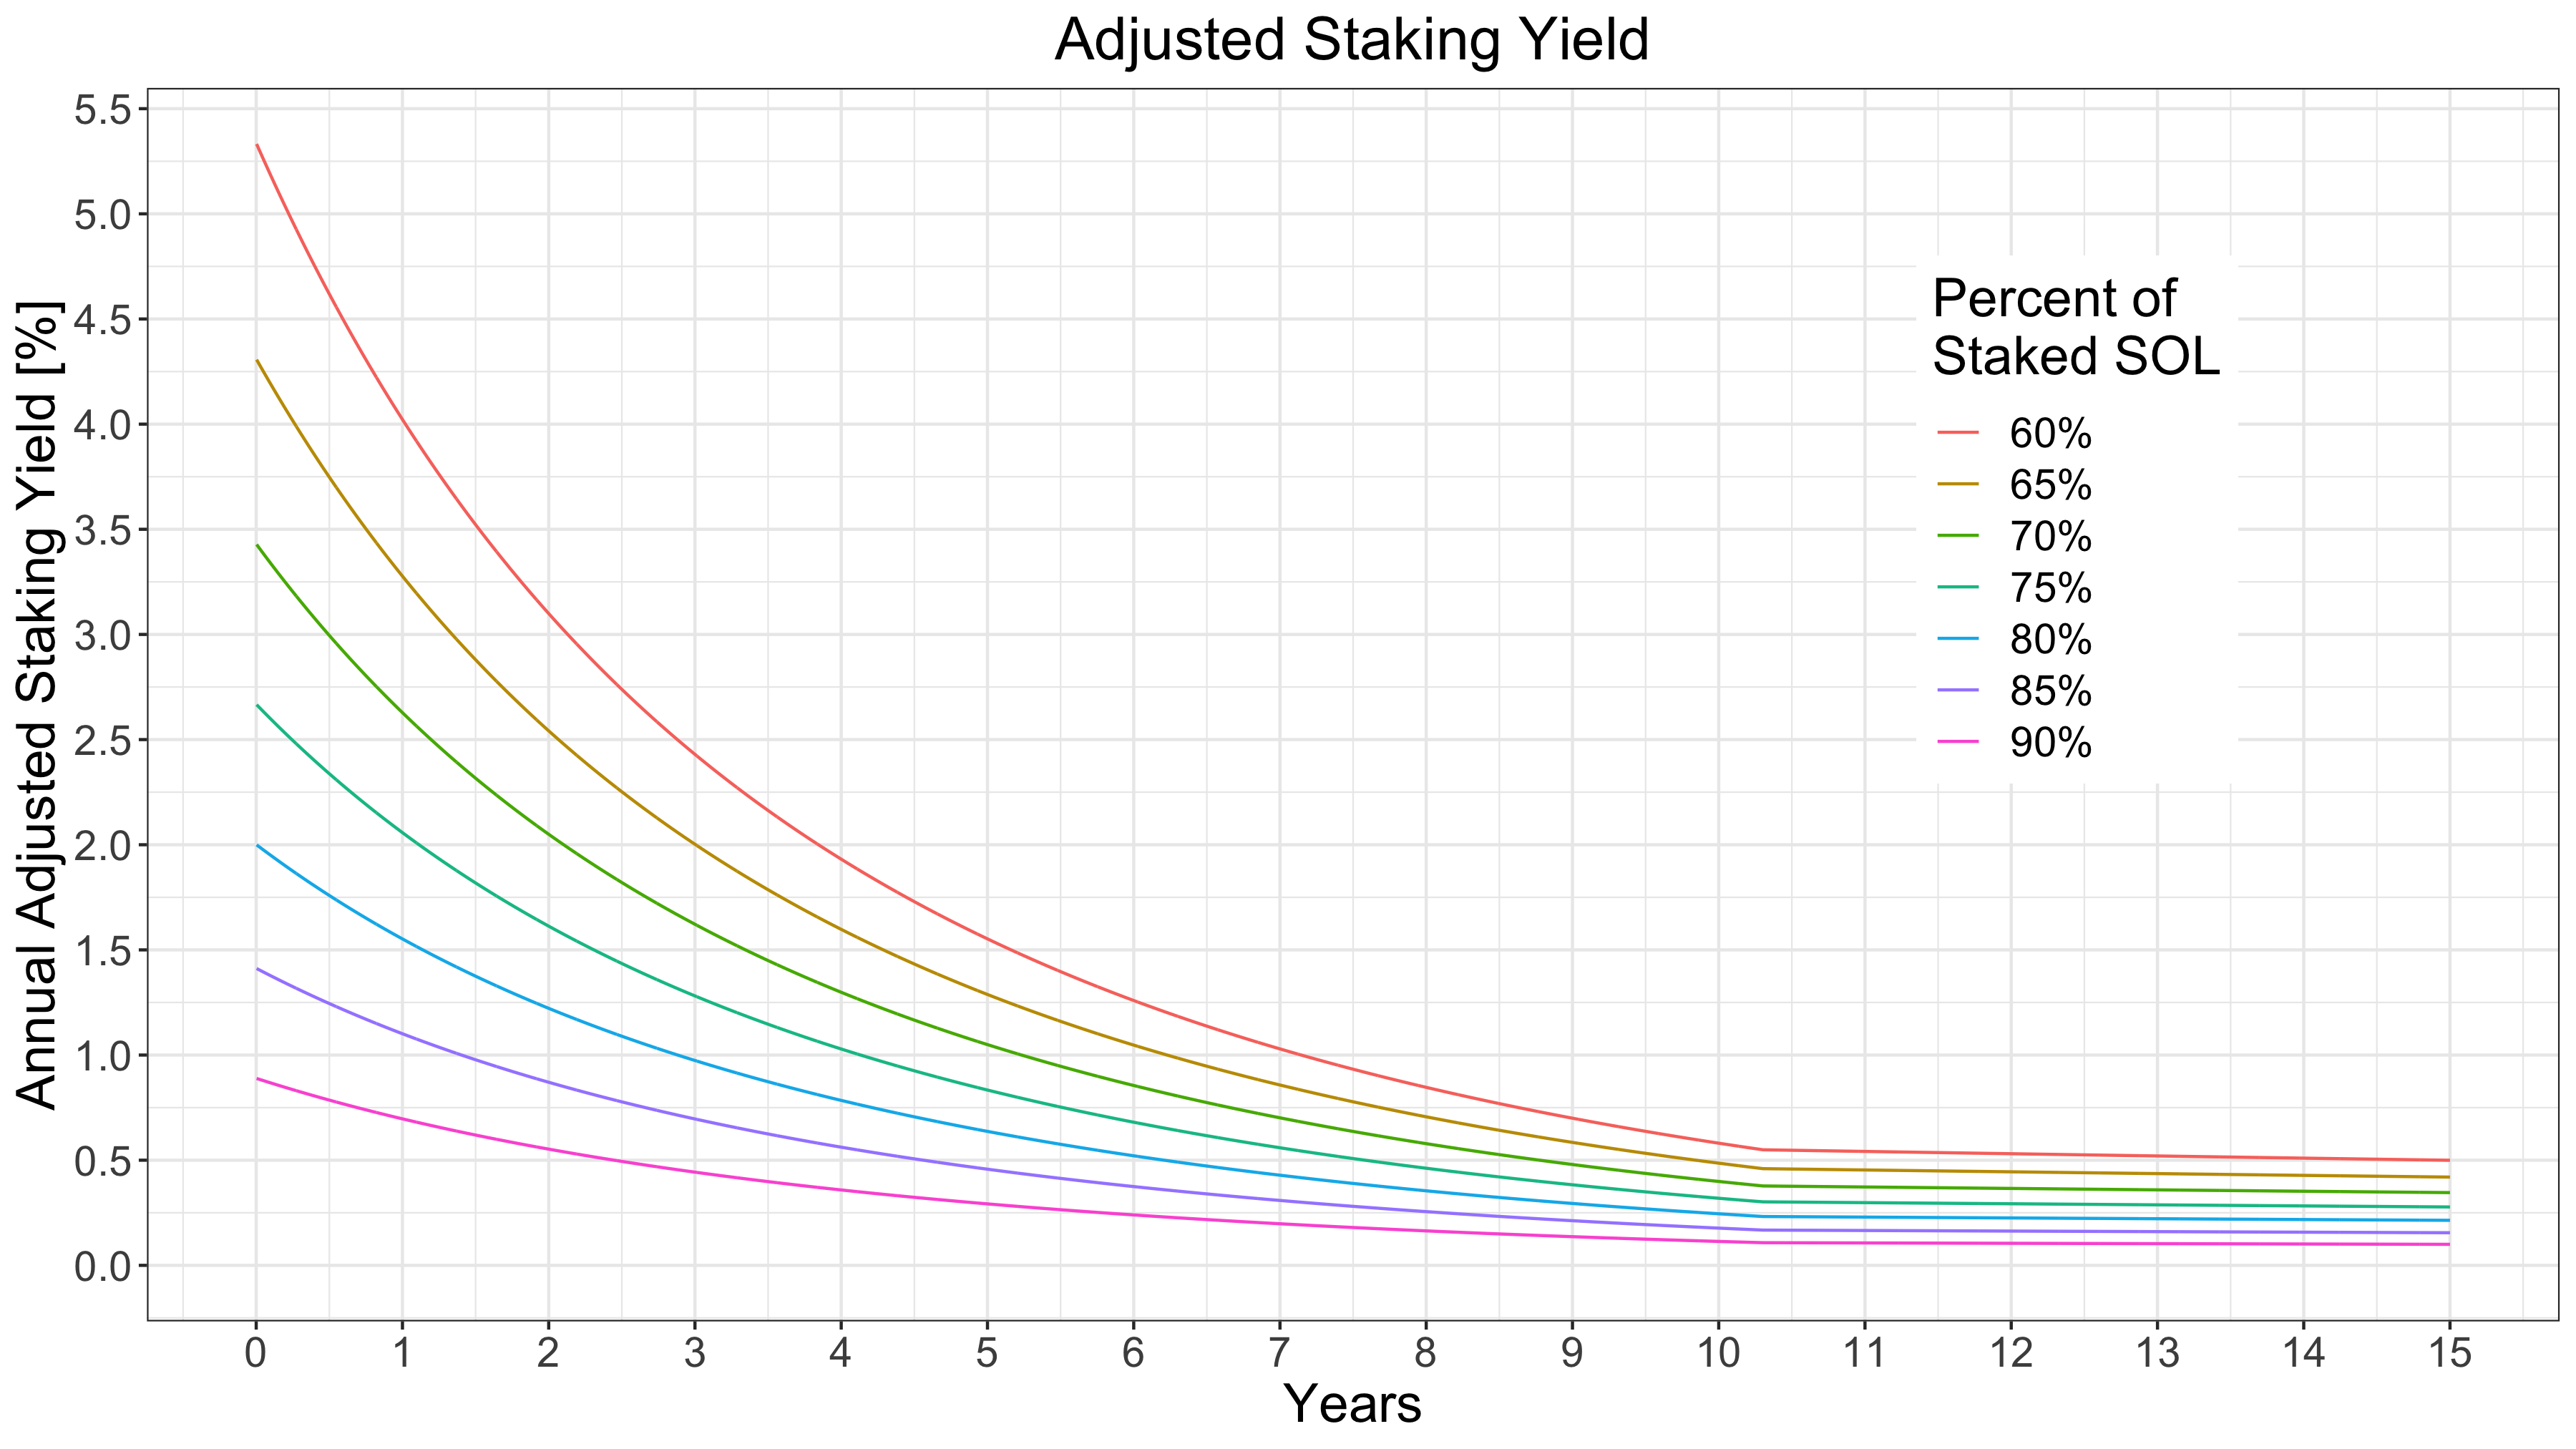 p_ex_adjusted_staked_yields